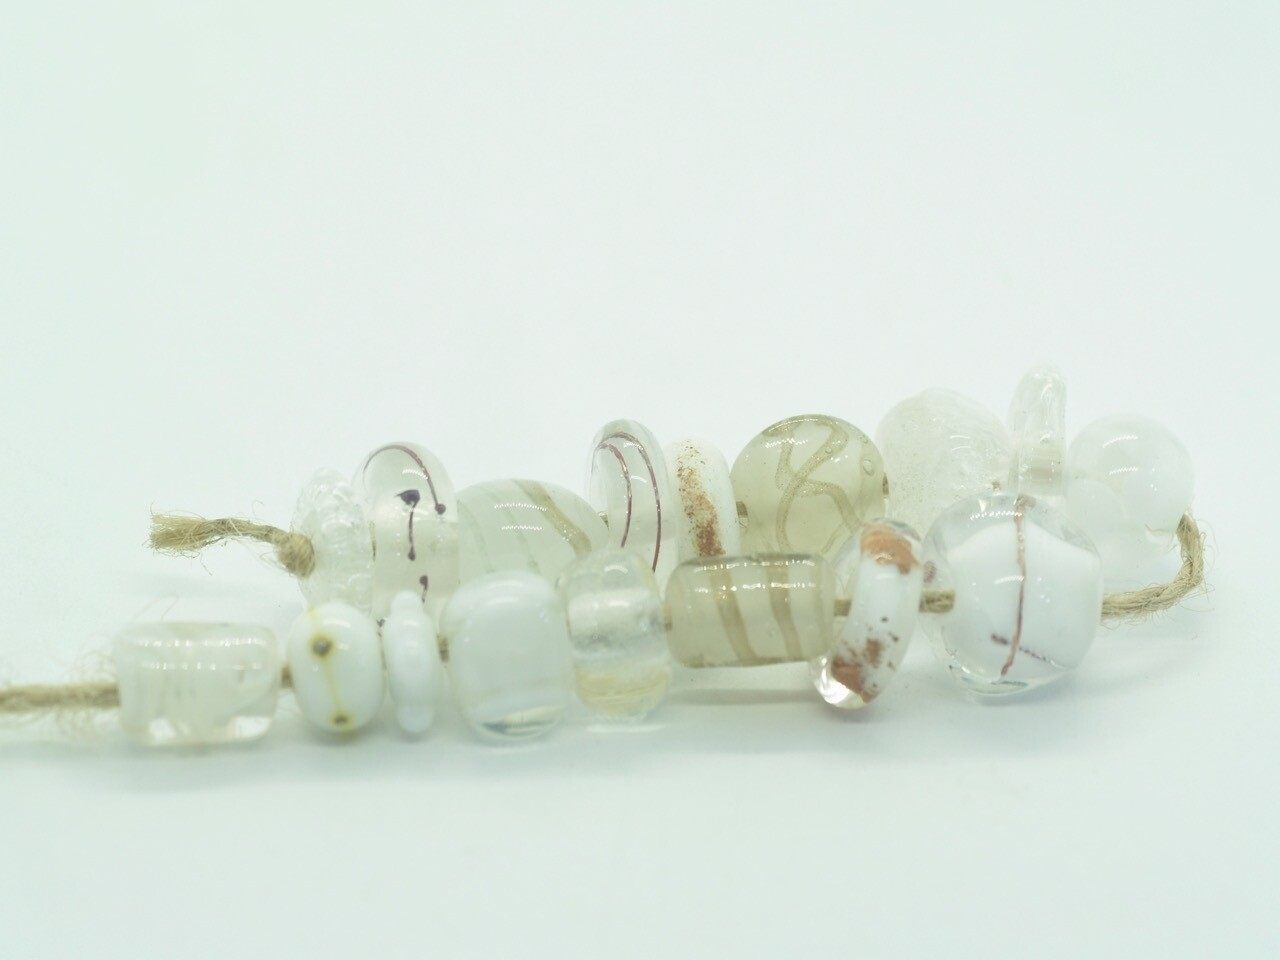 white emubeads strand for making jewellery